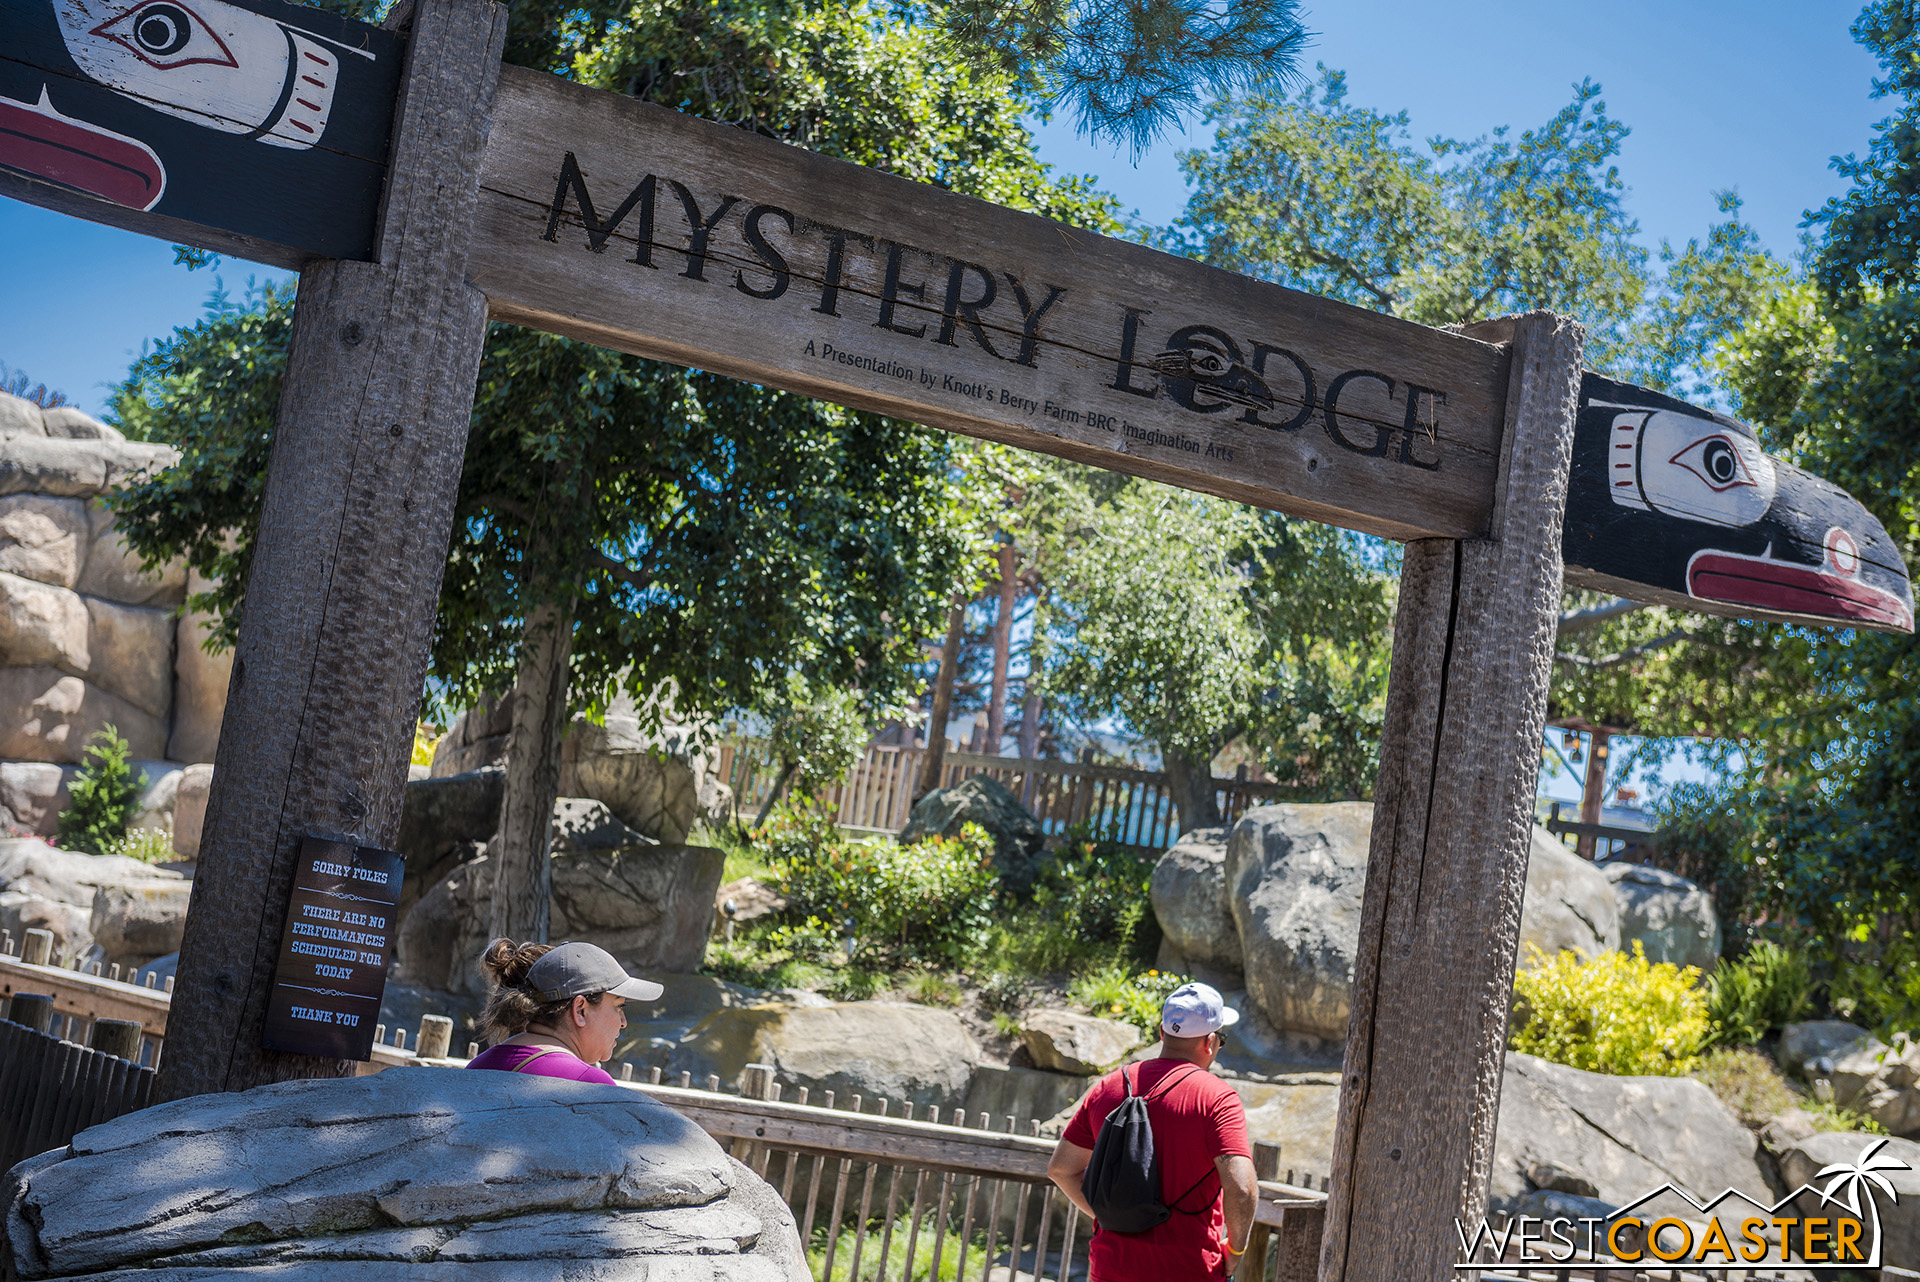 Speaking of mysterious things… Mystery Lodge has been closed indefinitely all summer.  Could it become the site of the new fort that the U.S. Cavalry is looking to build?